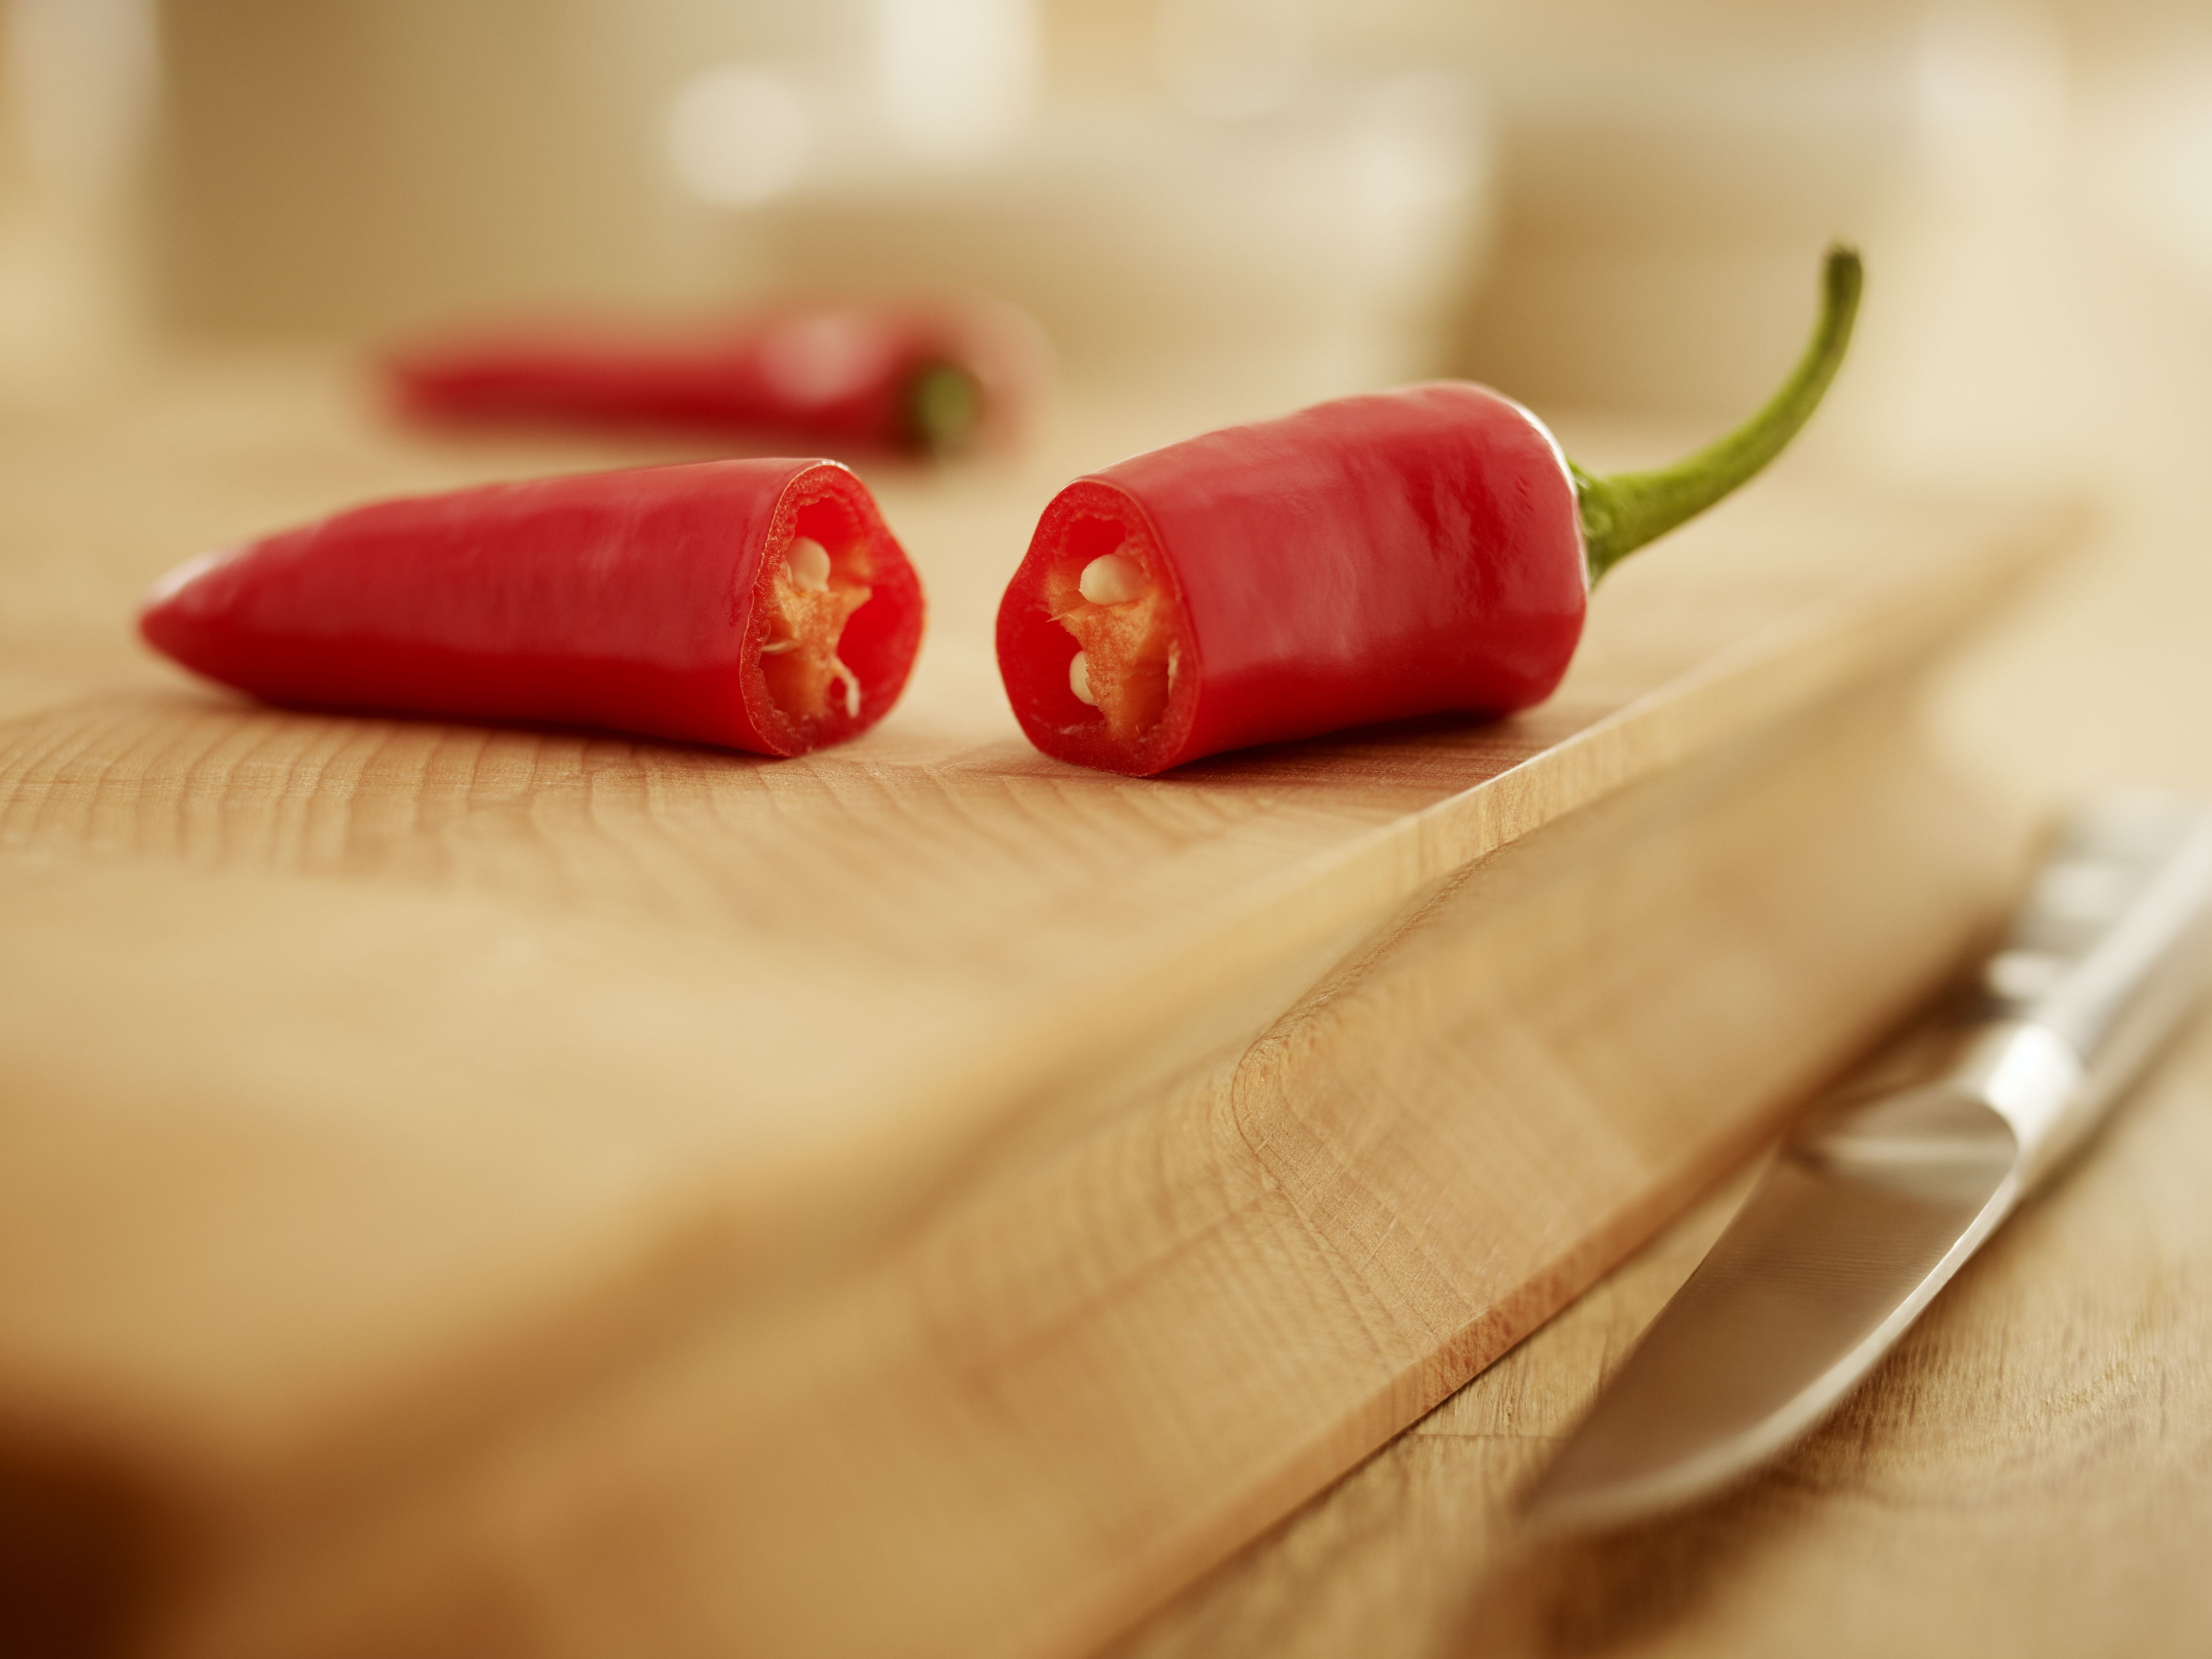 Hot Chile Peppers On The Scoville Scale